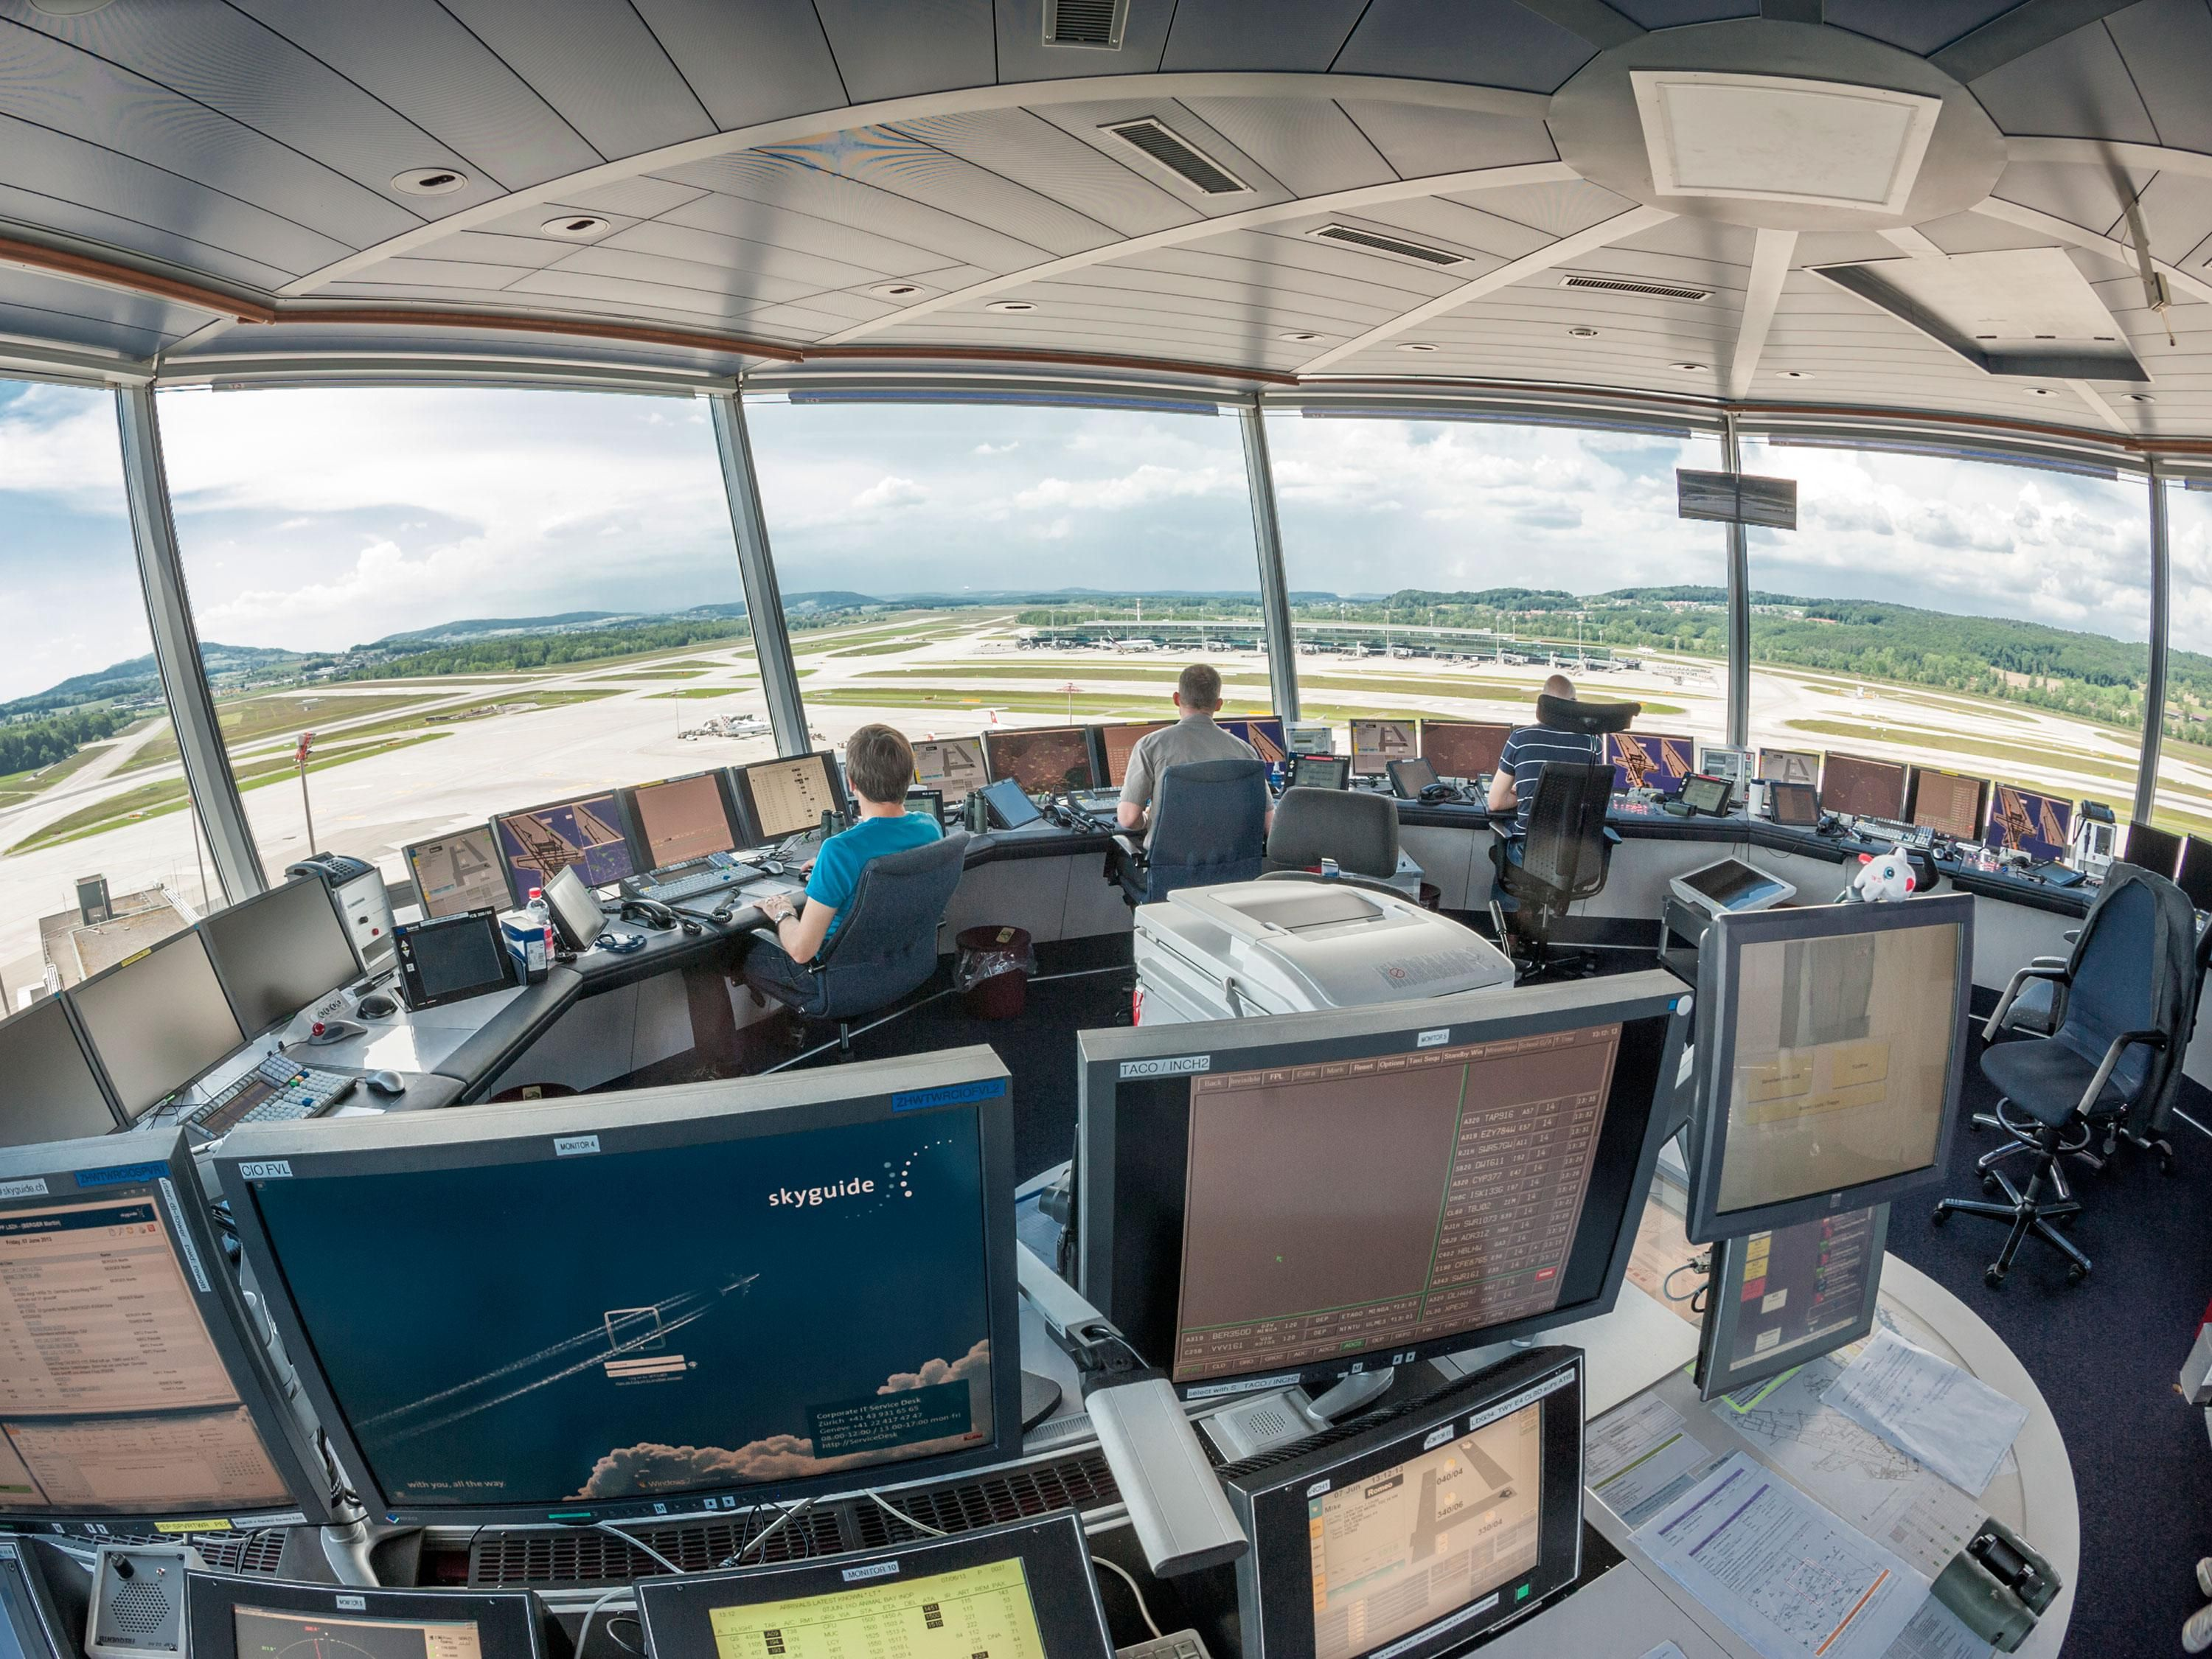 Air traffic controllers in a control tower monitoring the airfield.